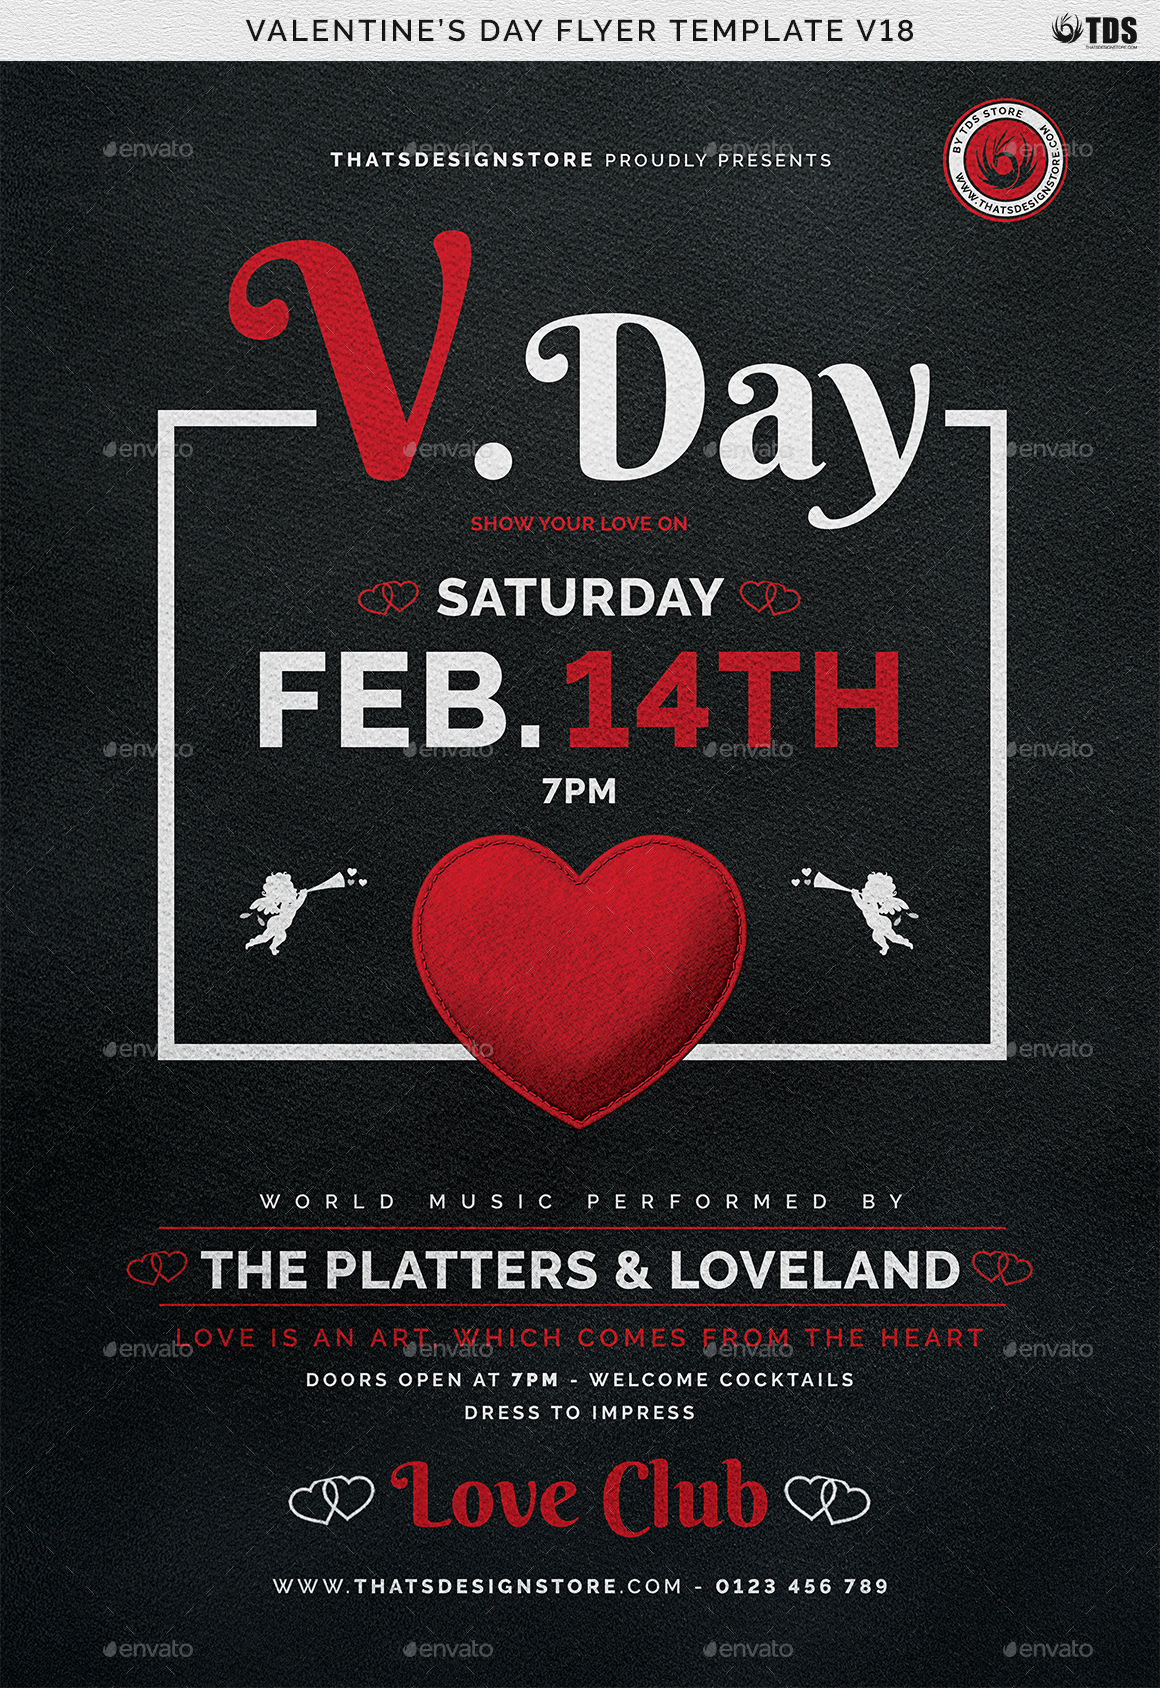 valentines day flyer template v18 by lou606 graphicriver